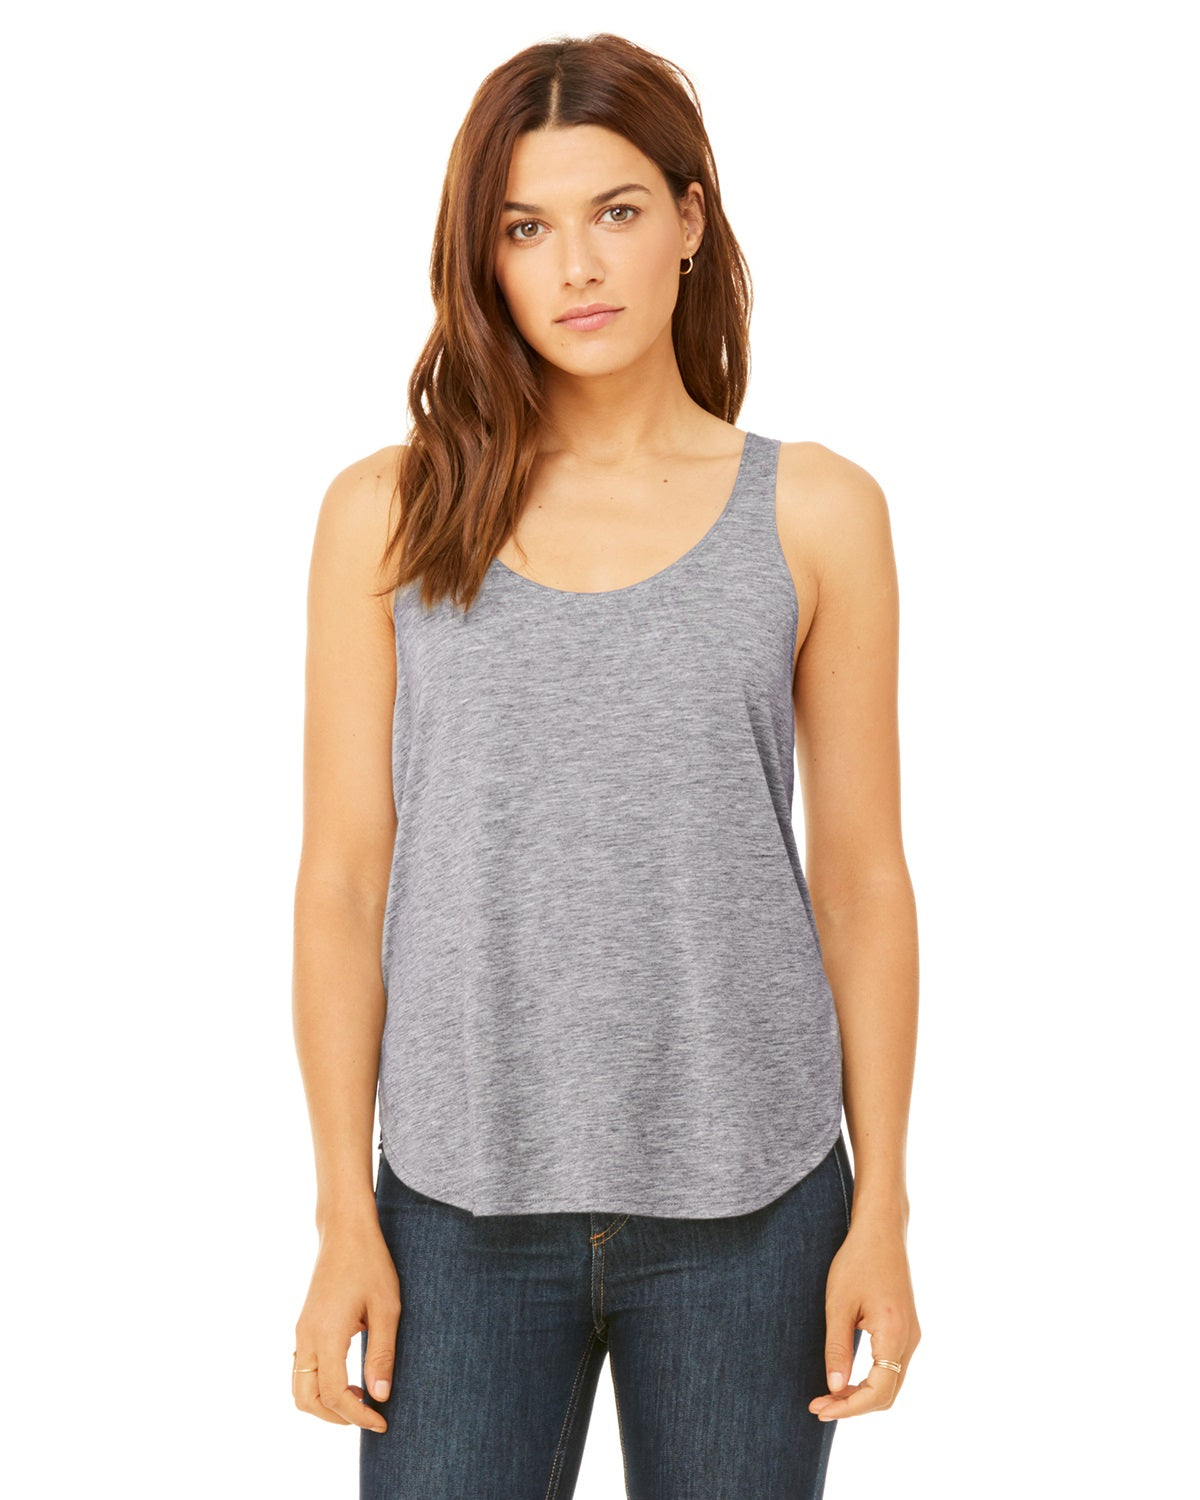 J'Adore Grey Ladies Tank Top with side slits